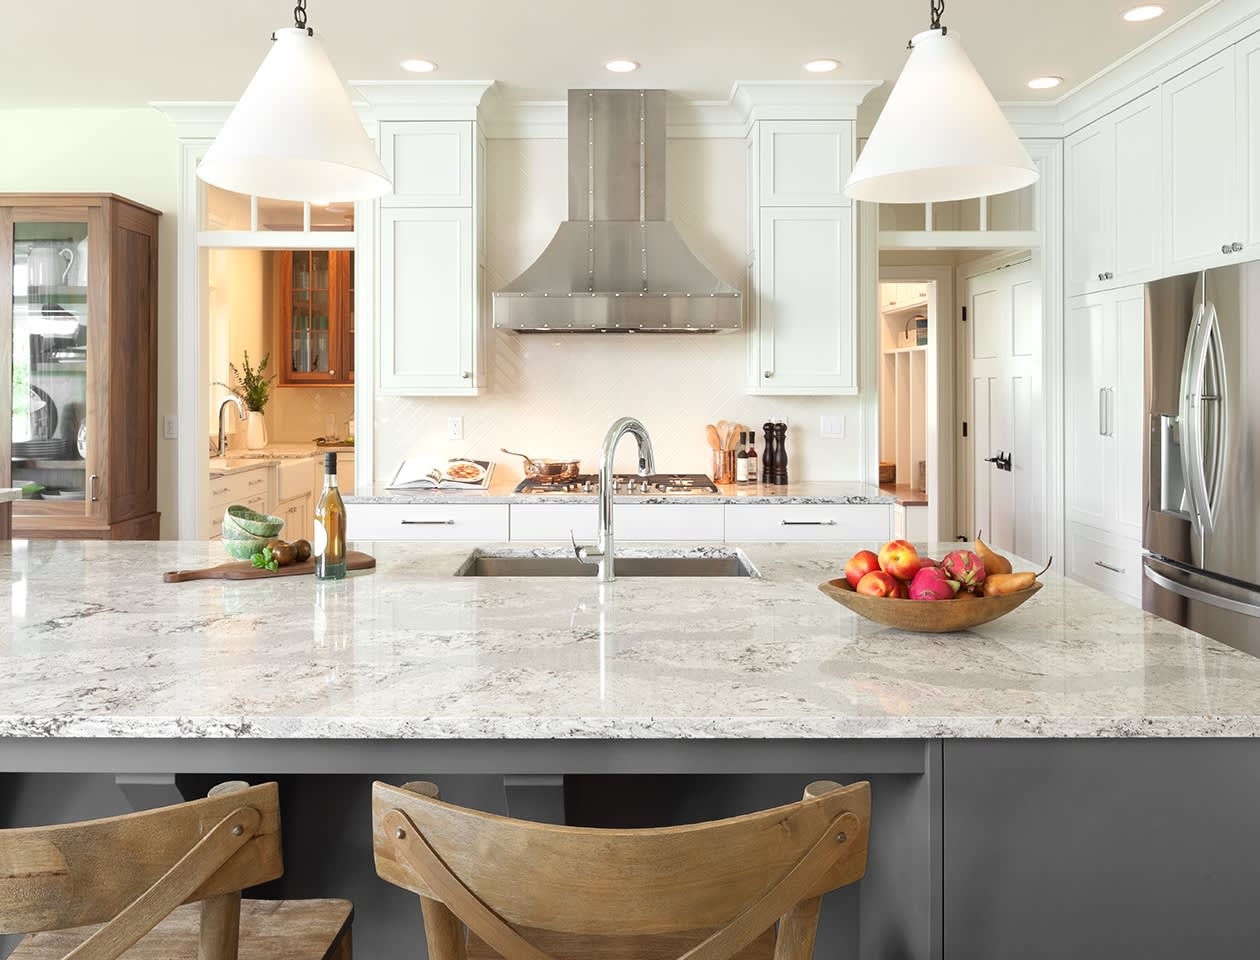 Top 9 Best Kitchen Remodel Ideas for 9